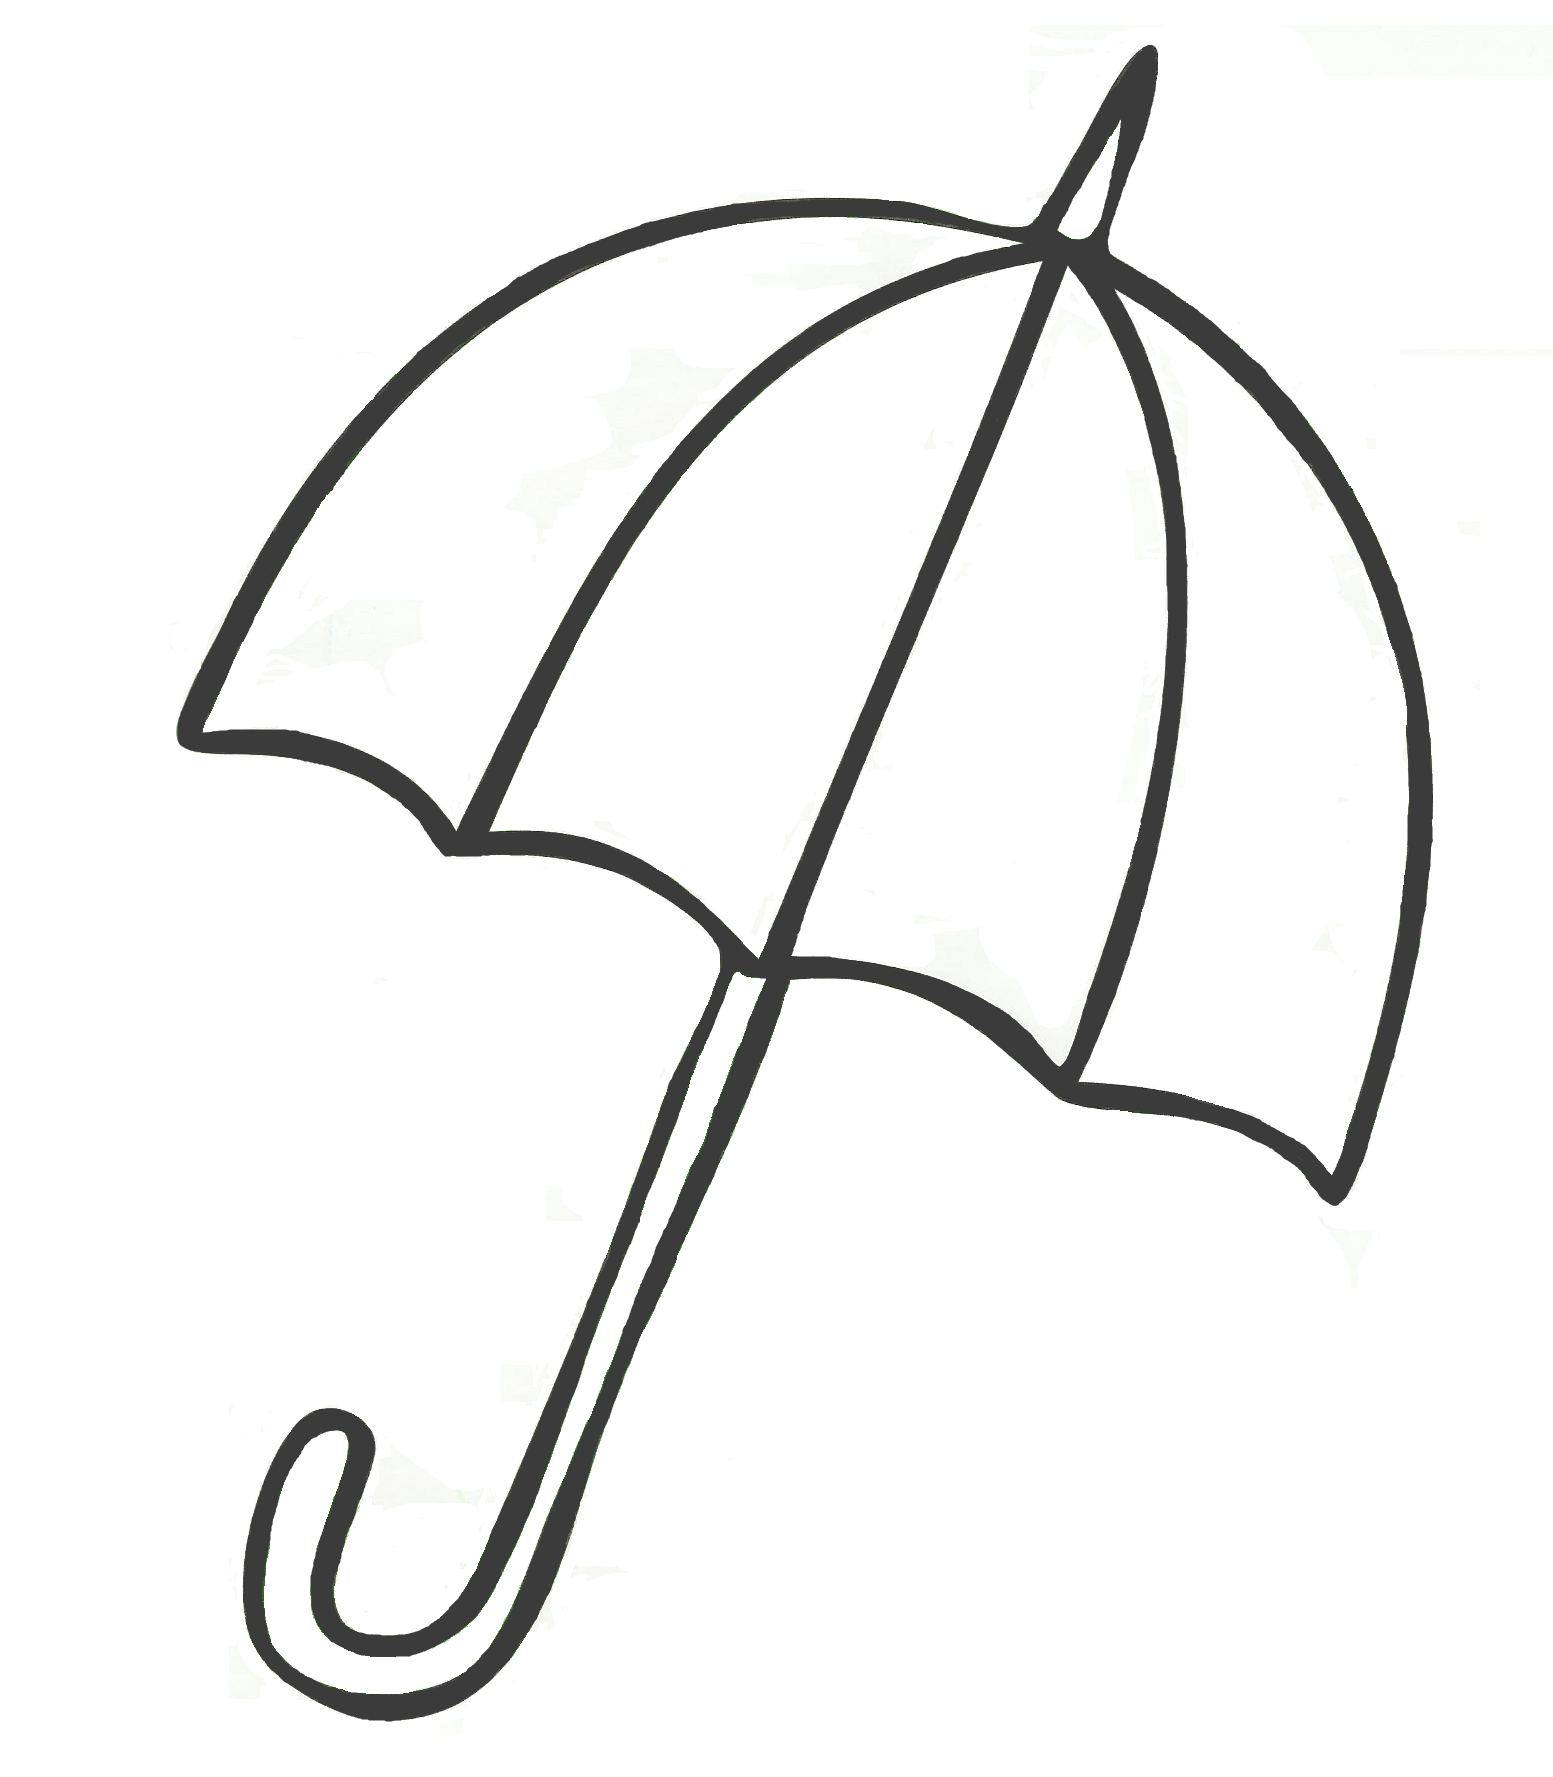 umbrella coloring page umbrella coloring pages surfnetkids coloring page umbrella